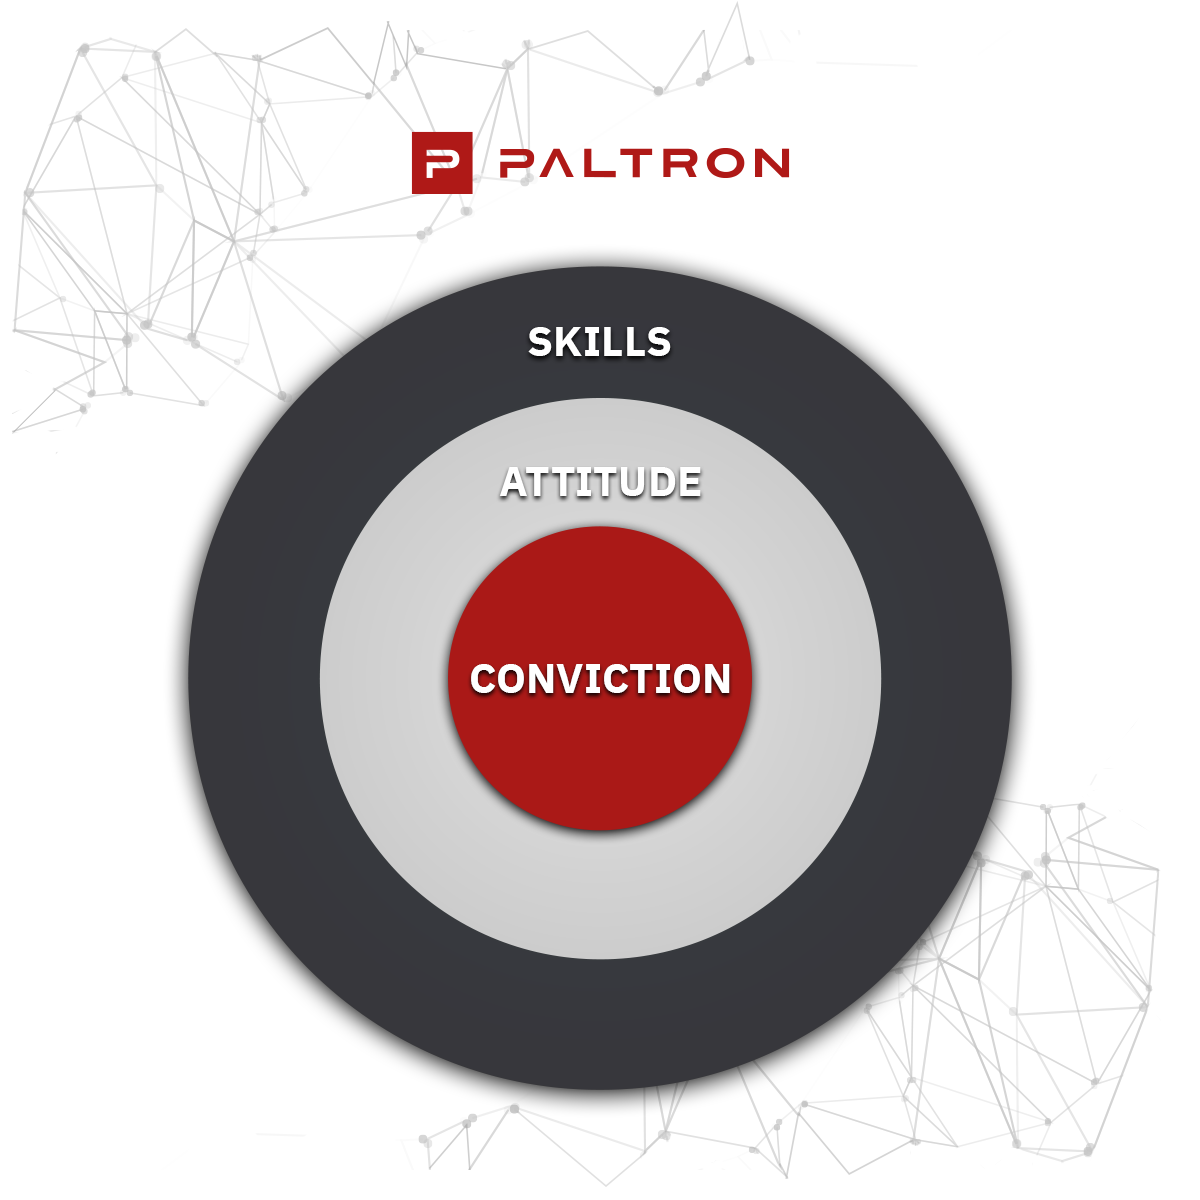 PALTRON's Golden Circle for employees